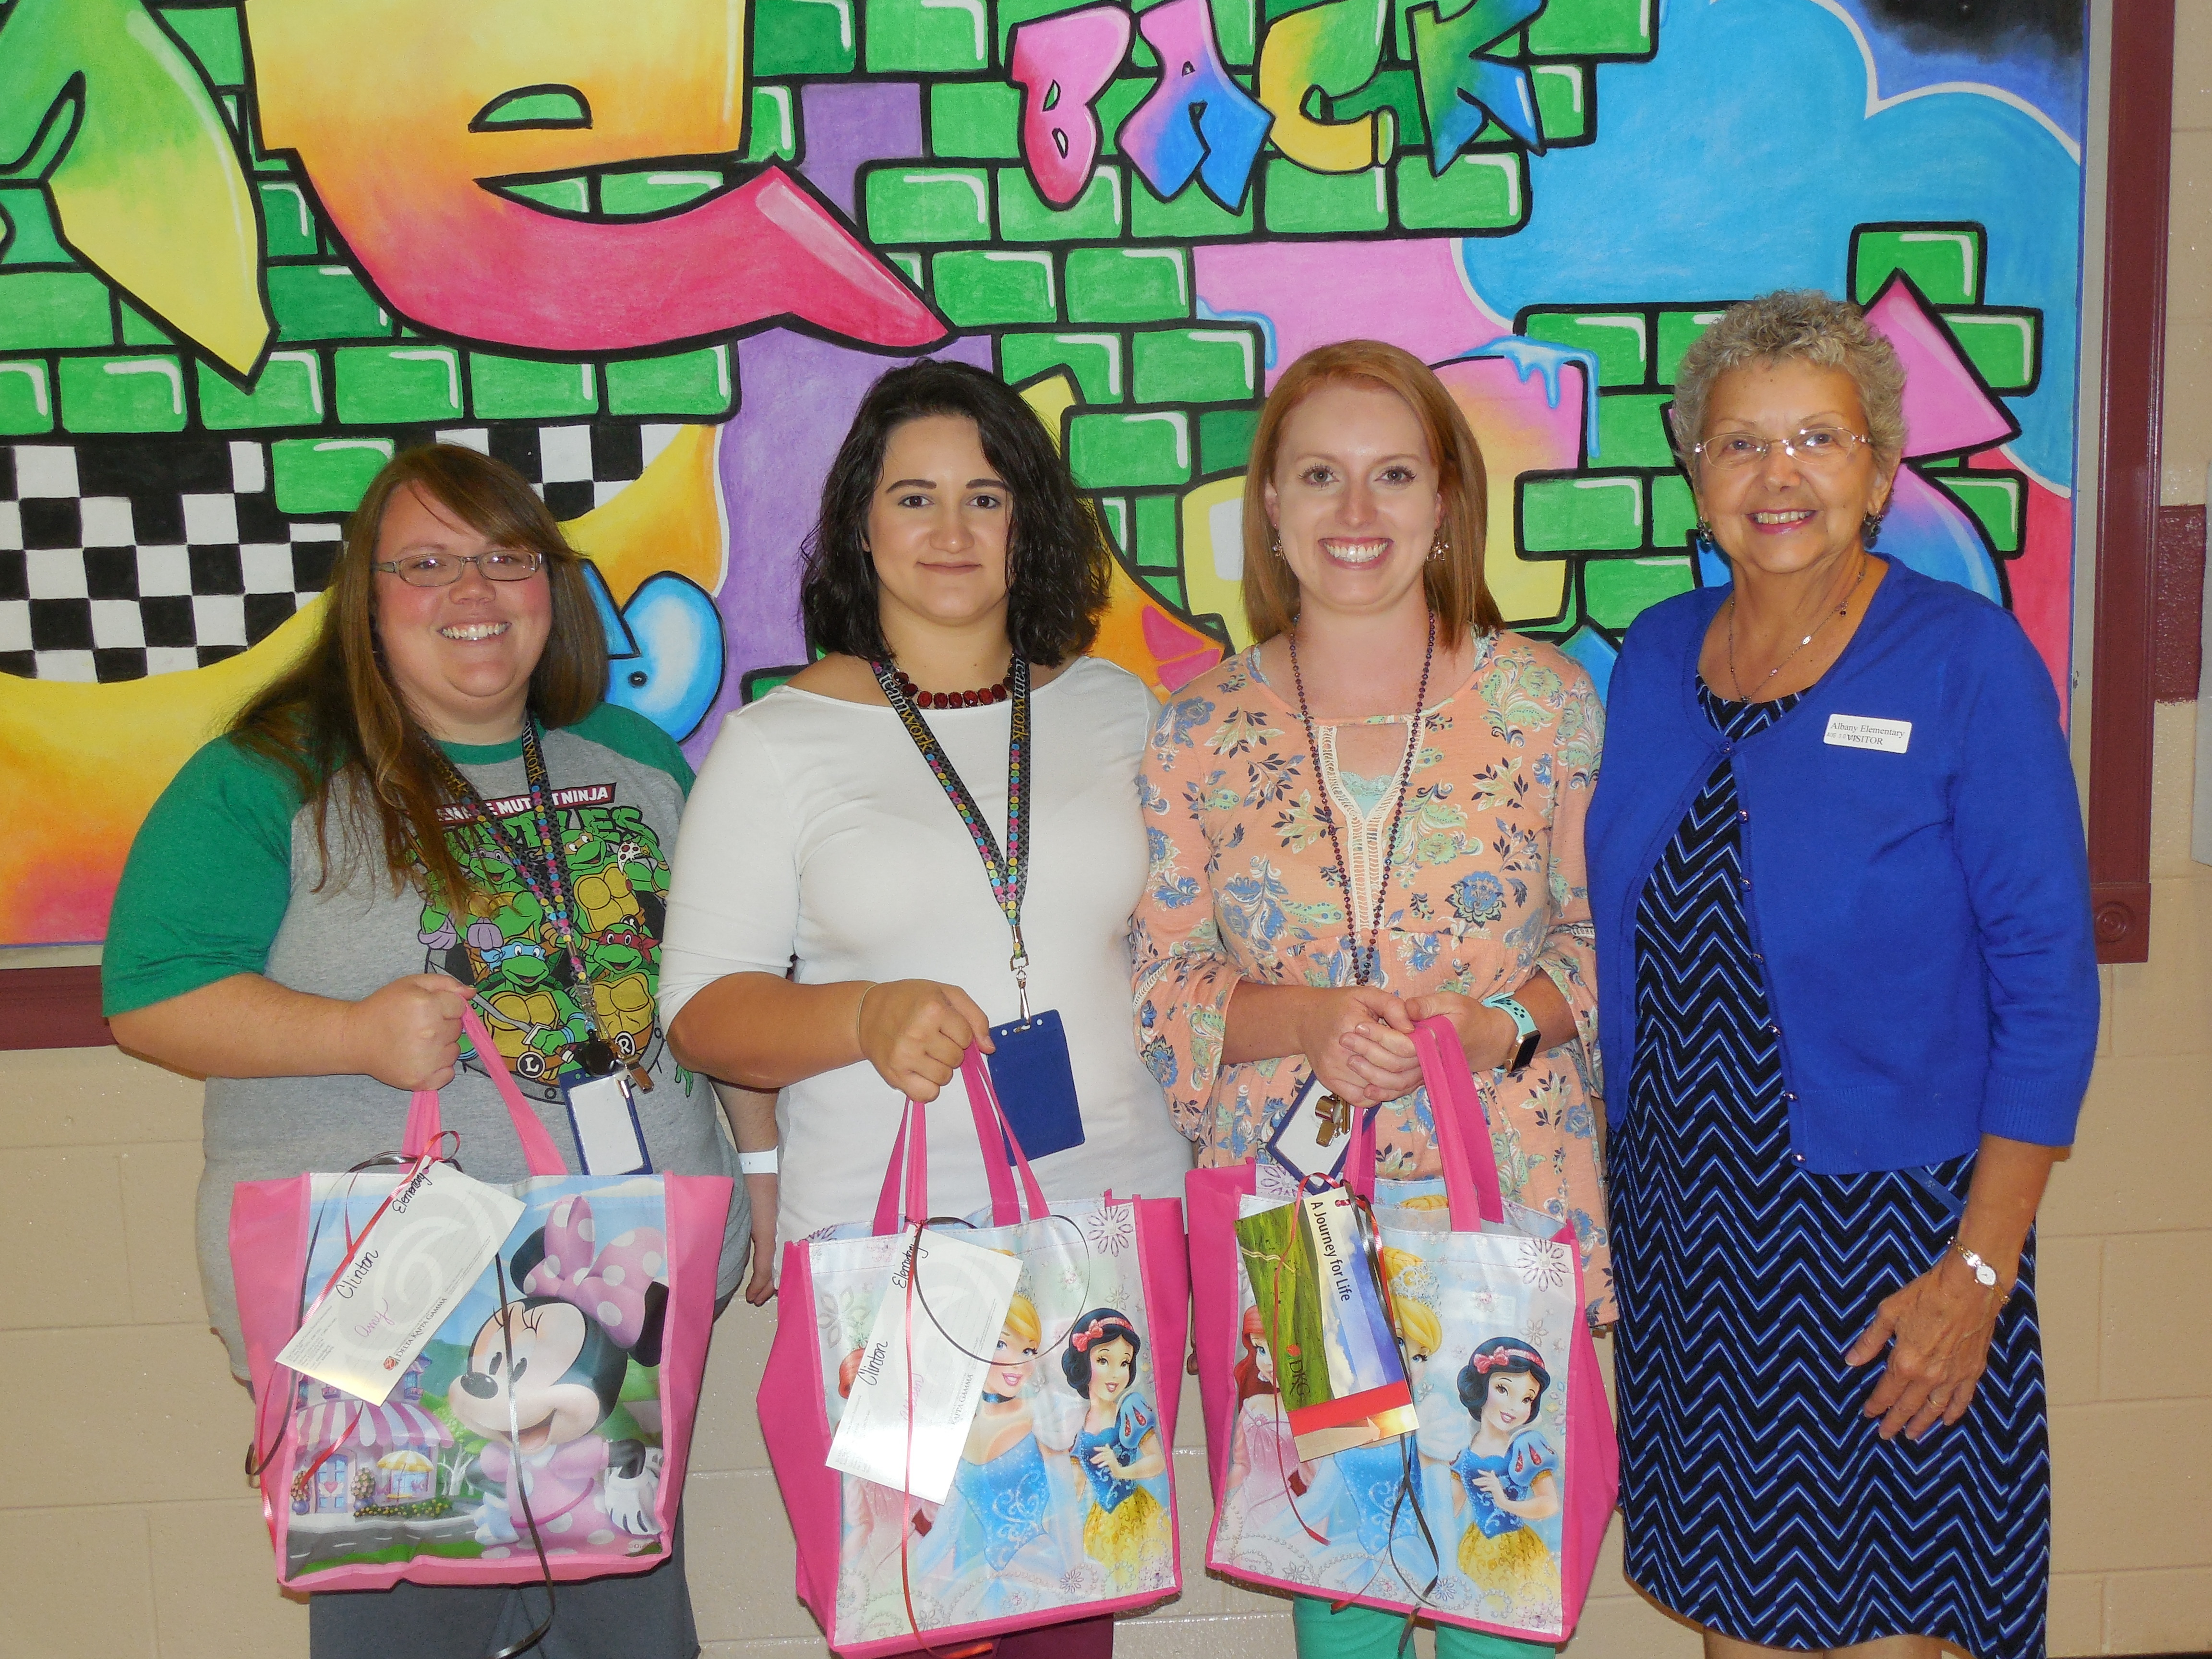 Amy Norris & Allison Jarvis, 4th grade teachers at AES, and Mindie Anderson, 3rd grade teacher at AES, receive their gifts from Mrs. Stearns.